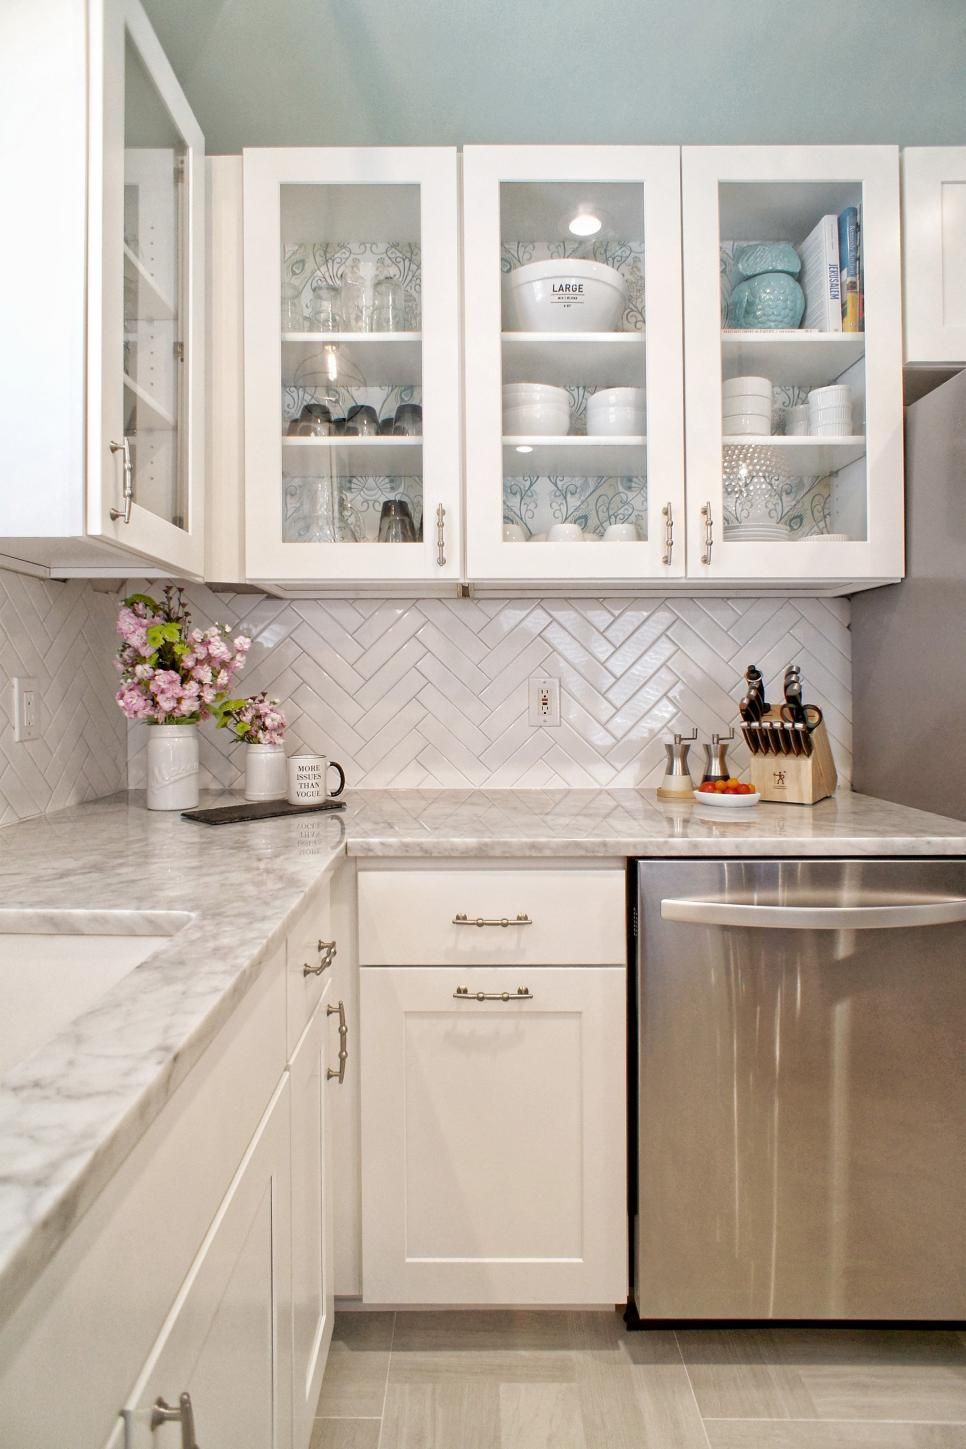 White Cabinets Kitchen Tile Floor Modern Farmhouse Kitchengray Tile Floors White Cabinets